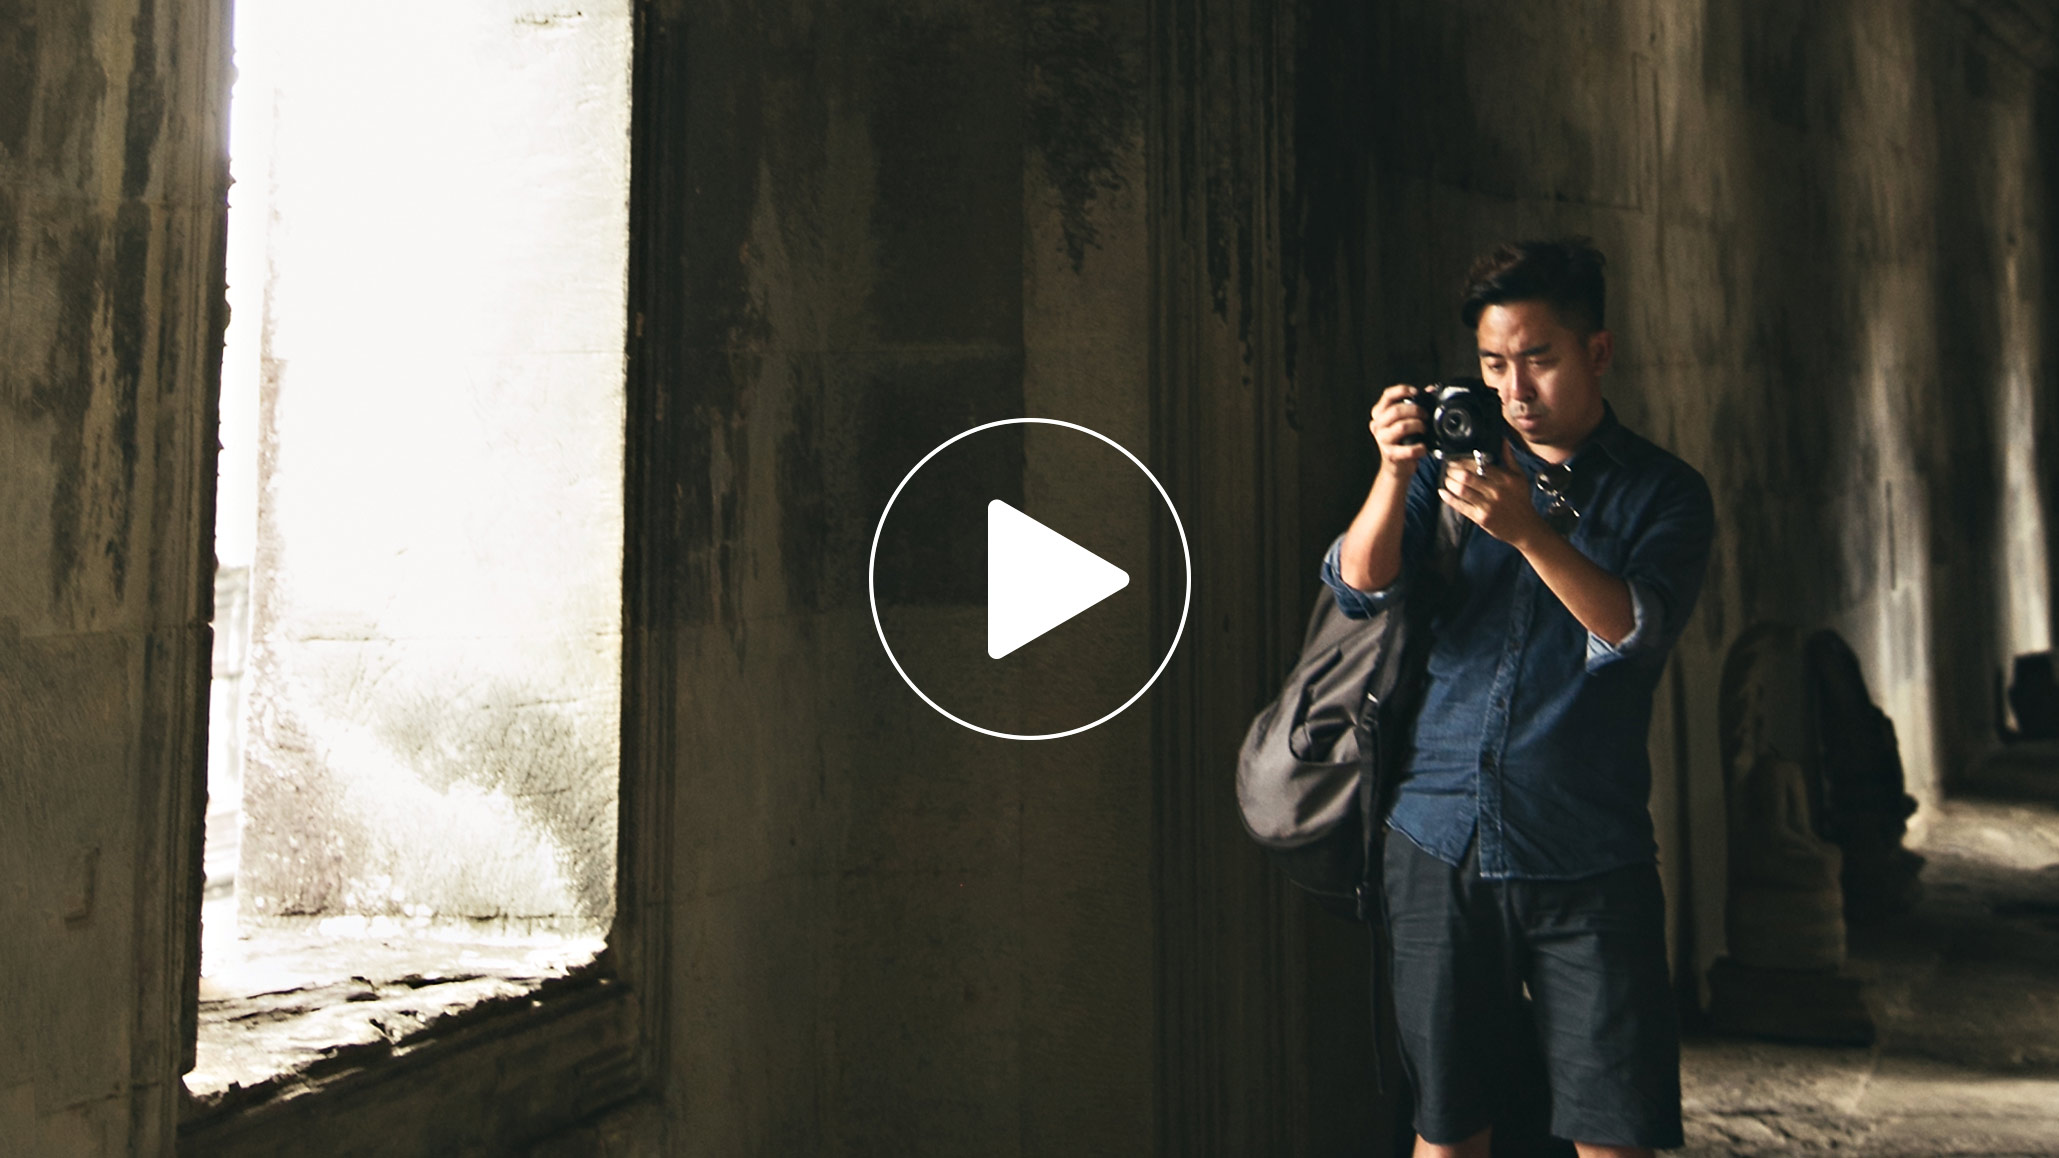 Samsung NX1 Review at Angkor Wat